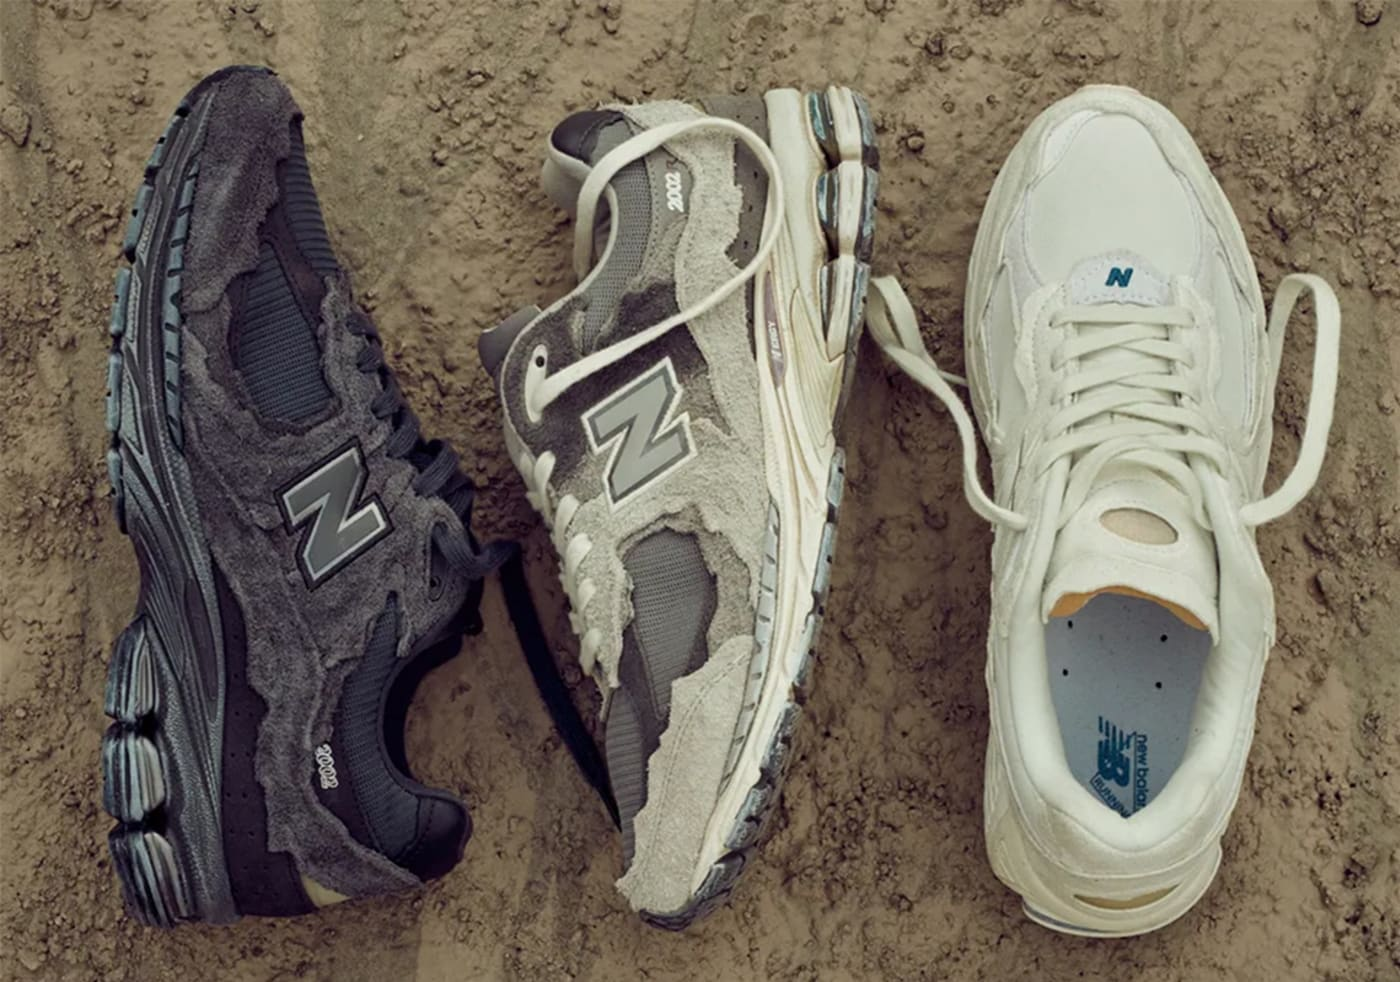 New Balance 2002r protection pack 1